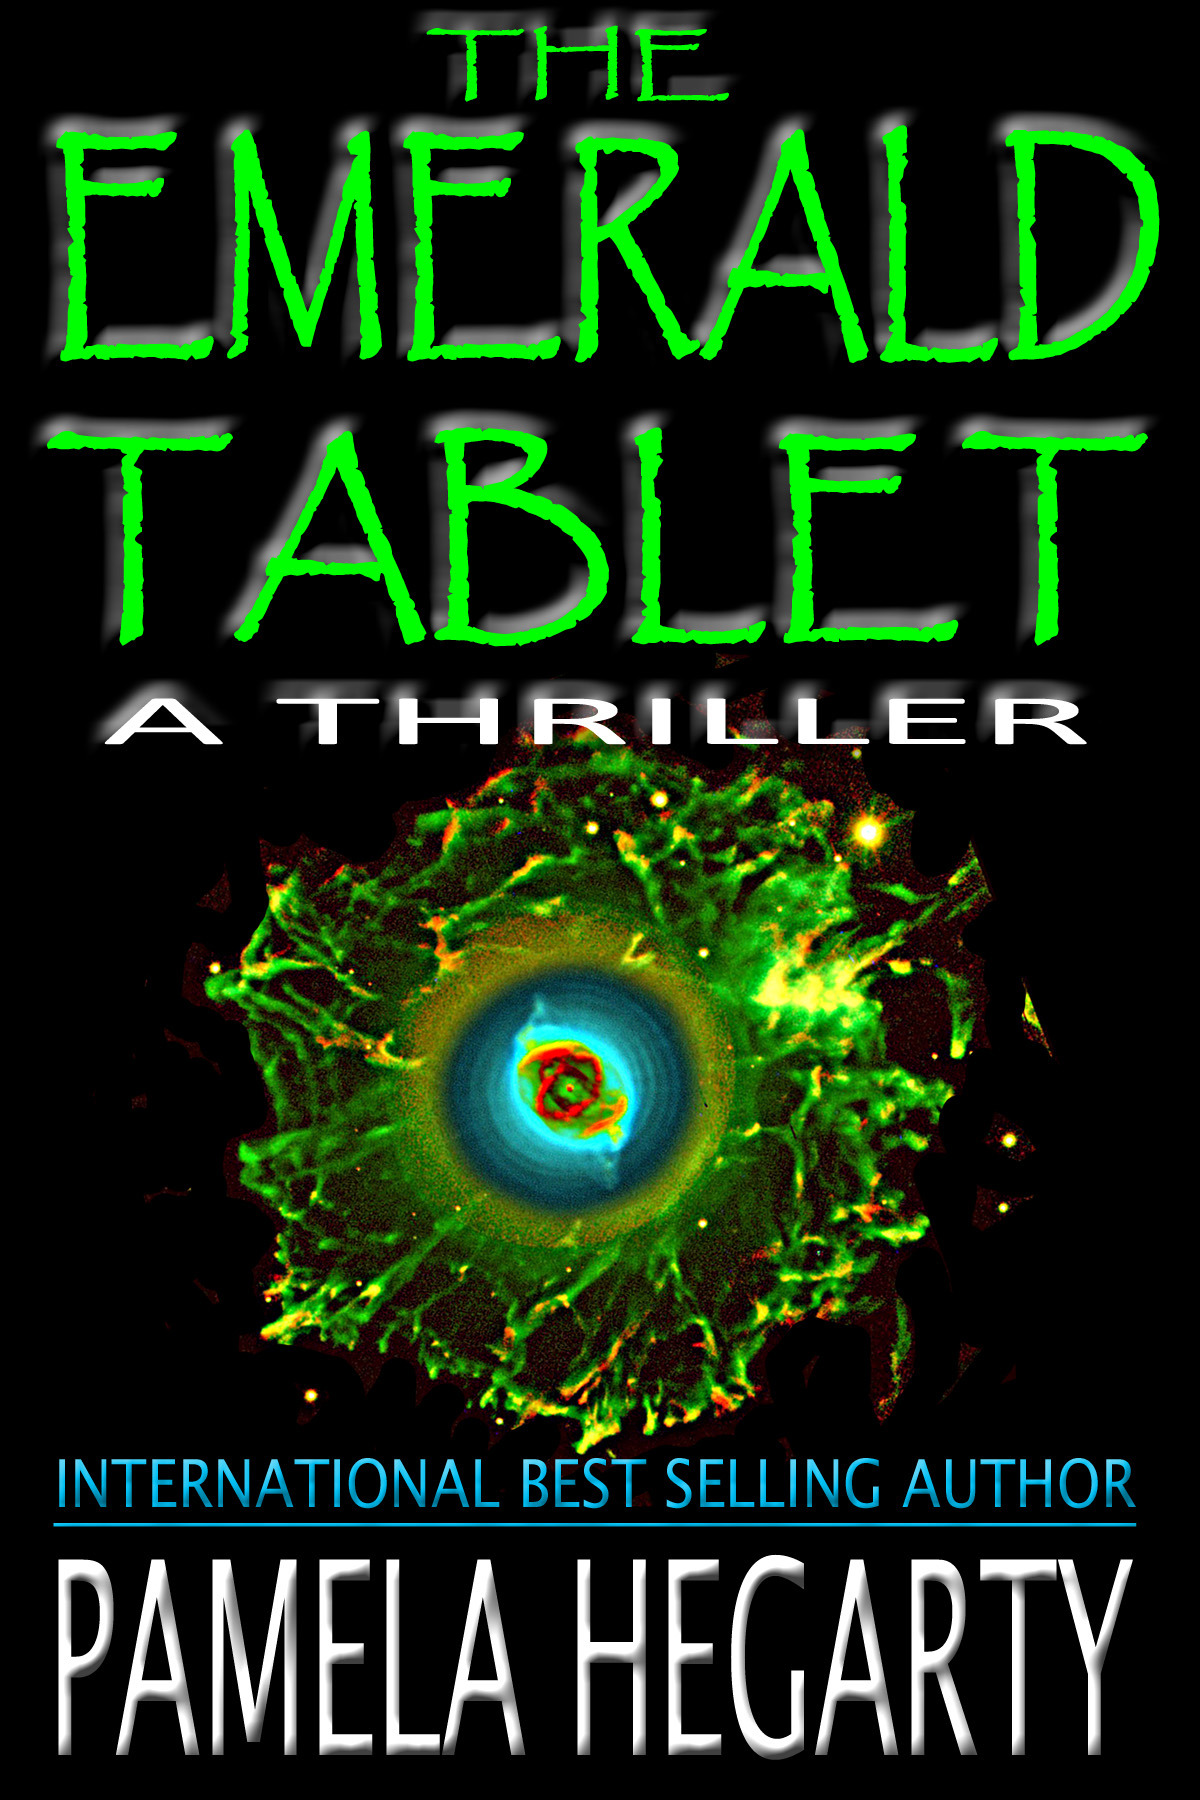 c5fd2bc0d6f8e1339bb2_Emerald_Tablet_front_cover_best_selling_sharp_copy.jpg